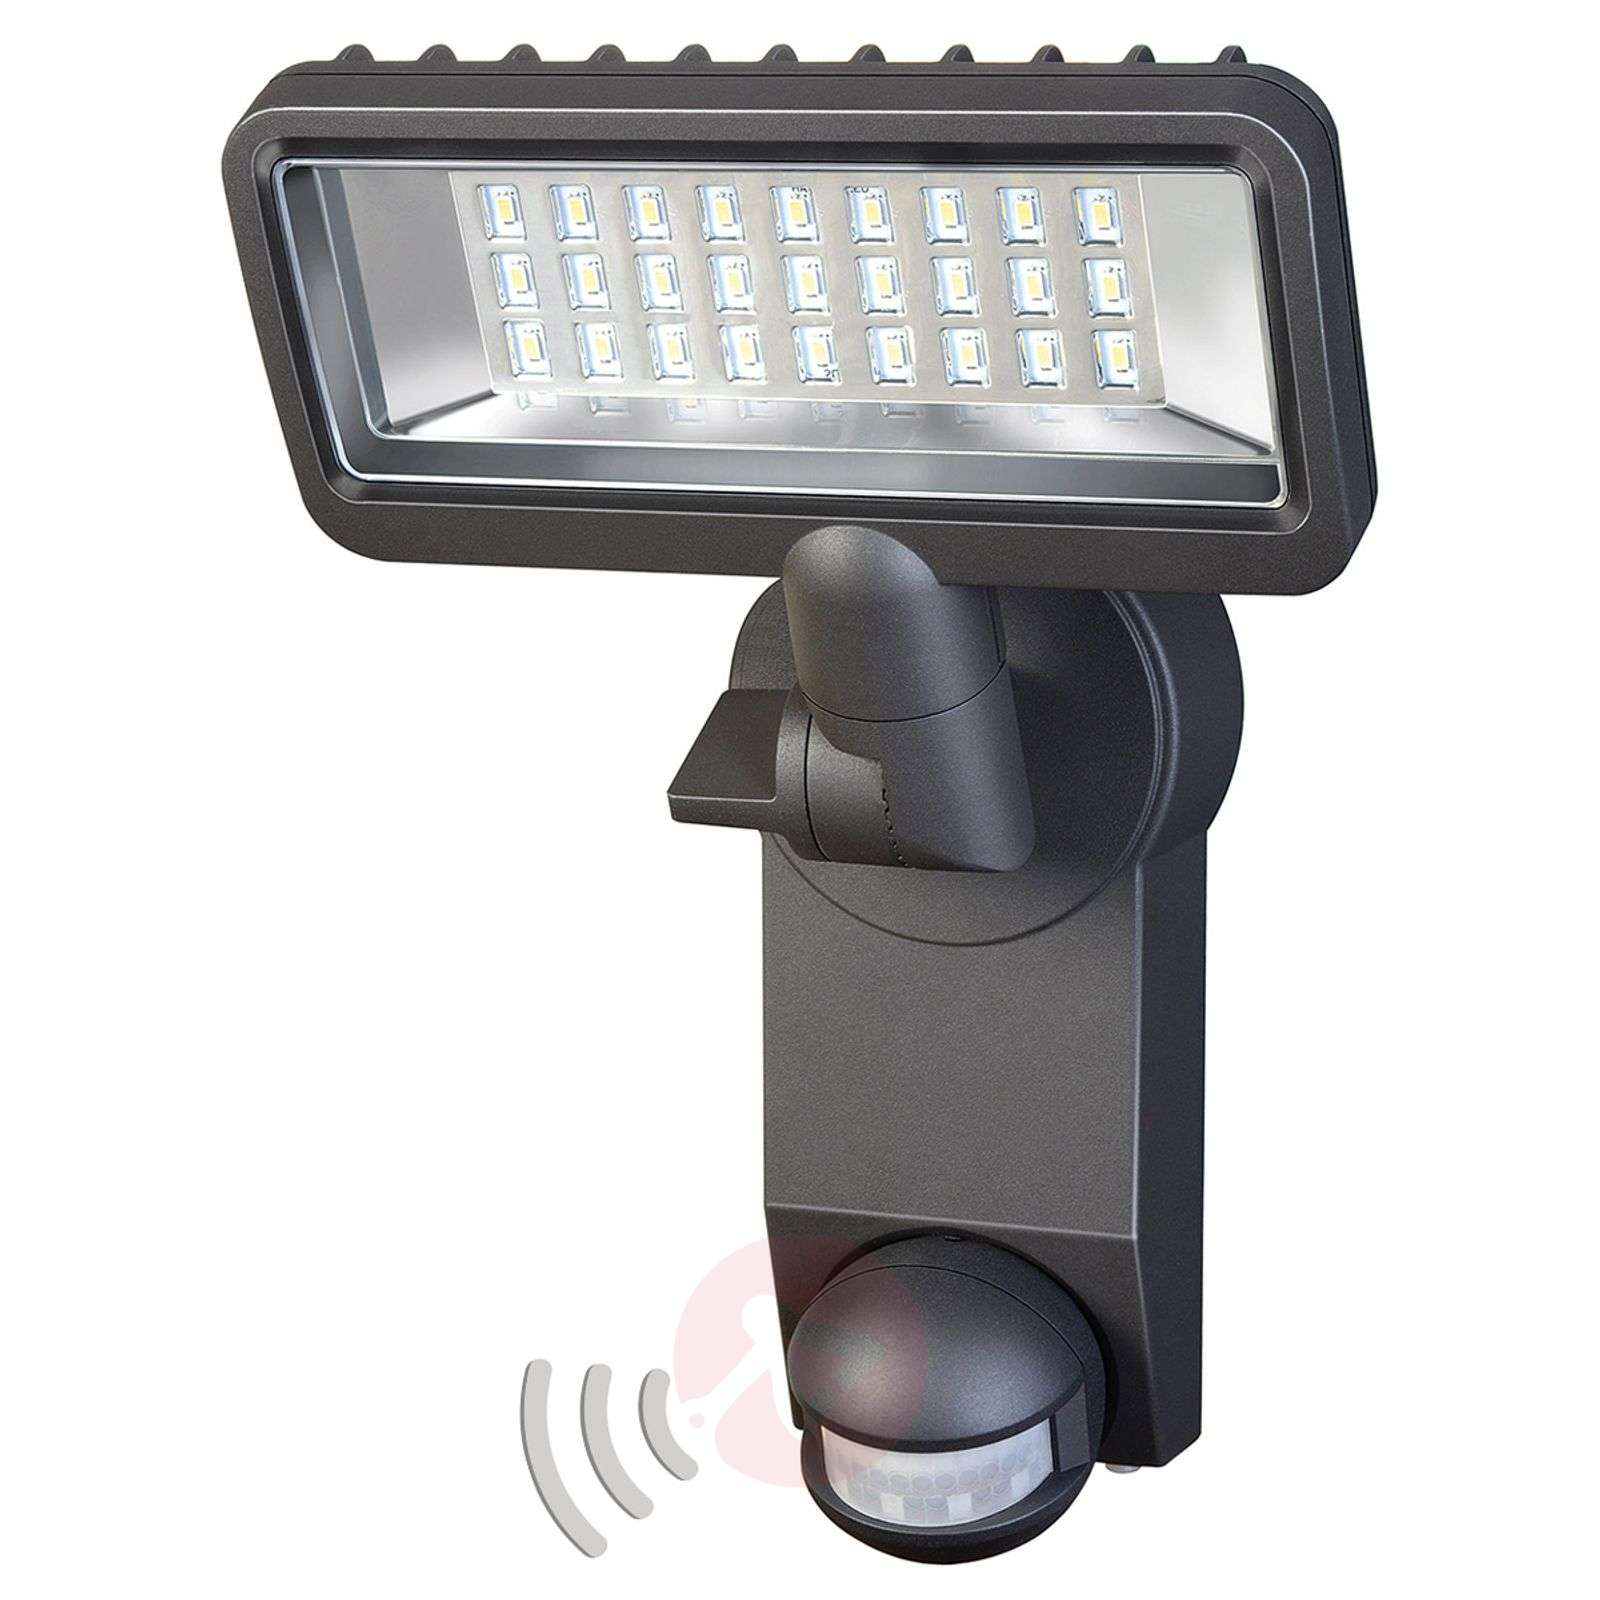 With motion detector City LED outdoor spotlight-1540156-01